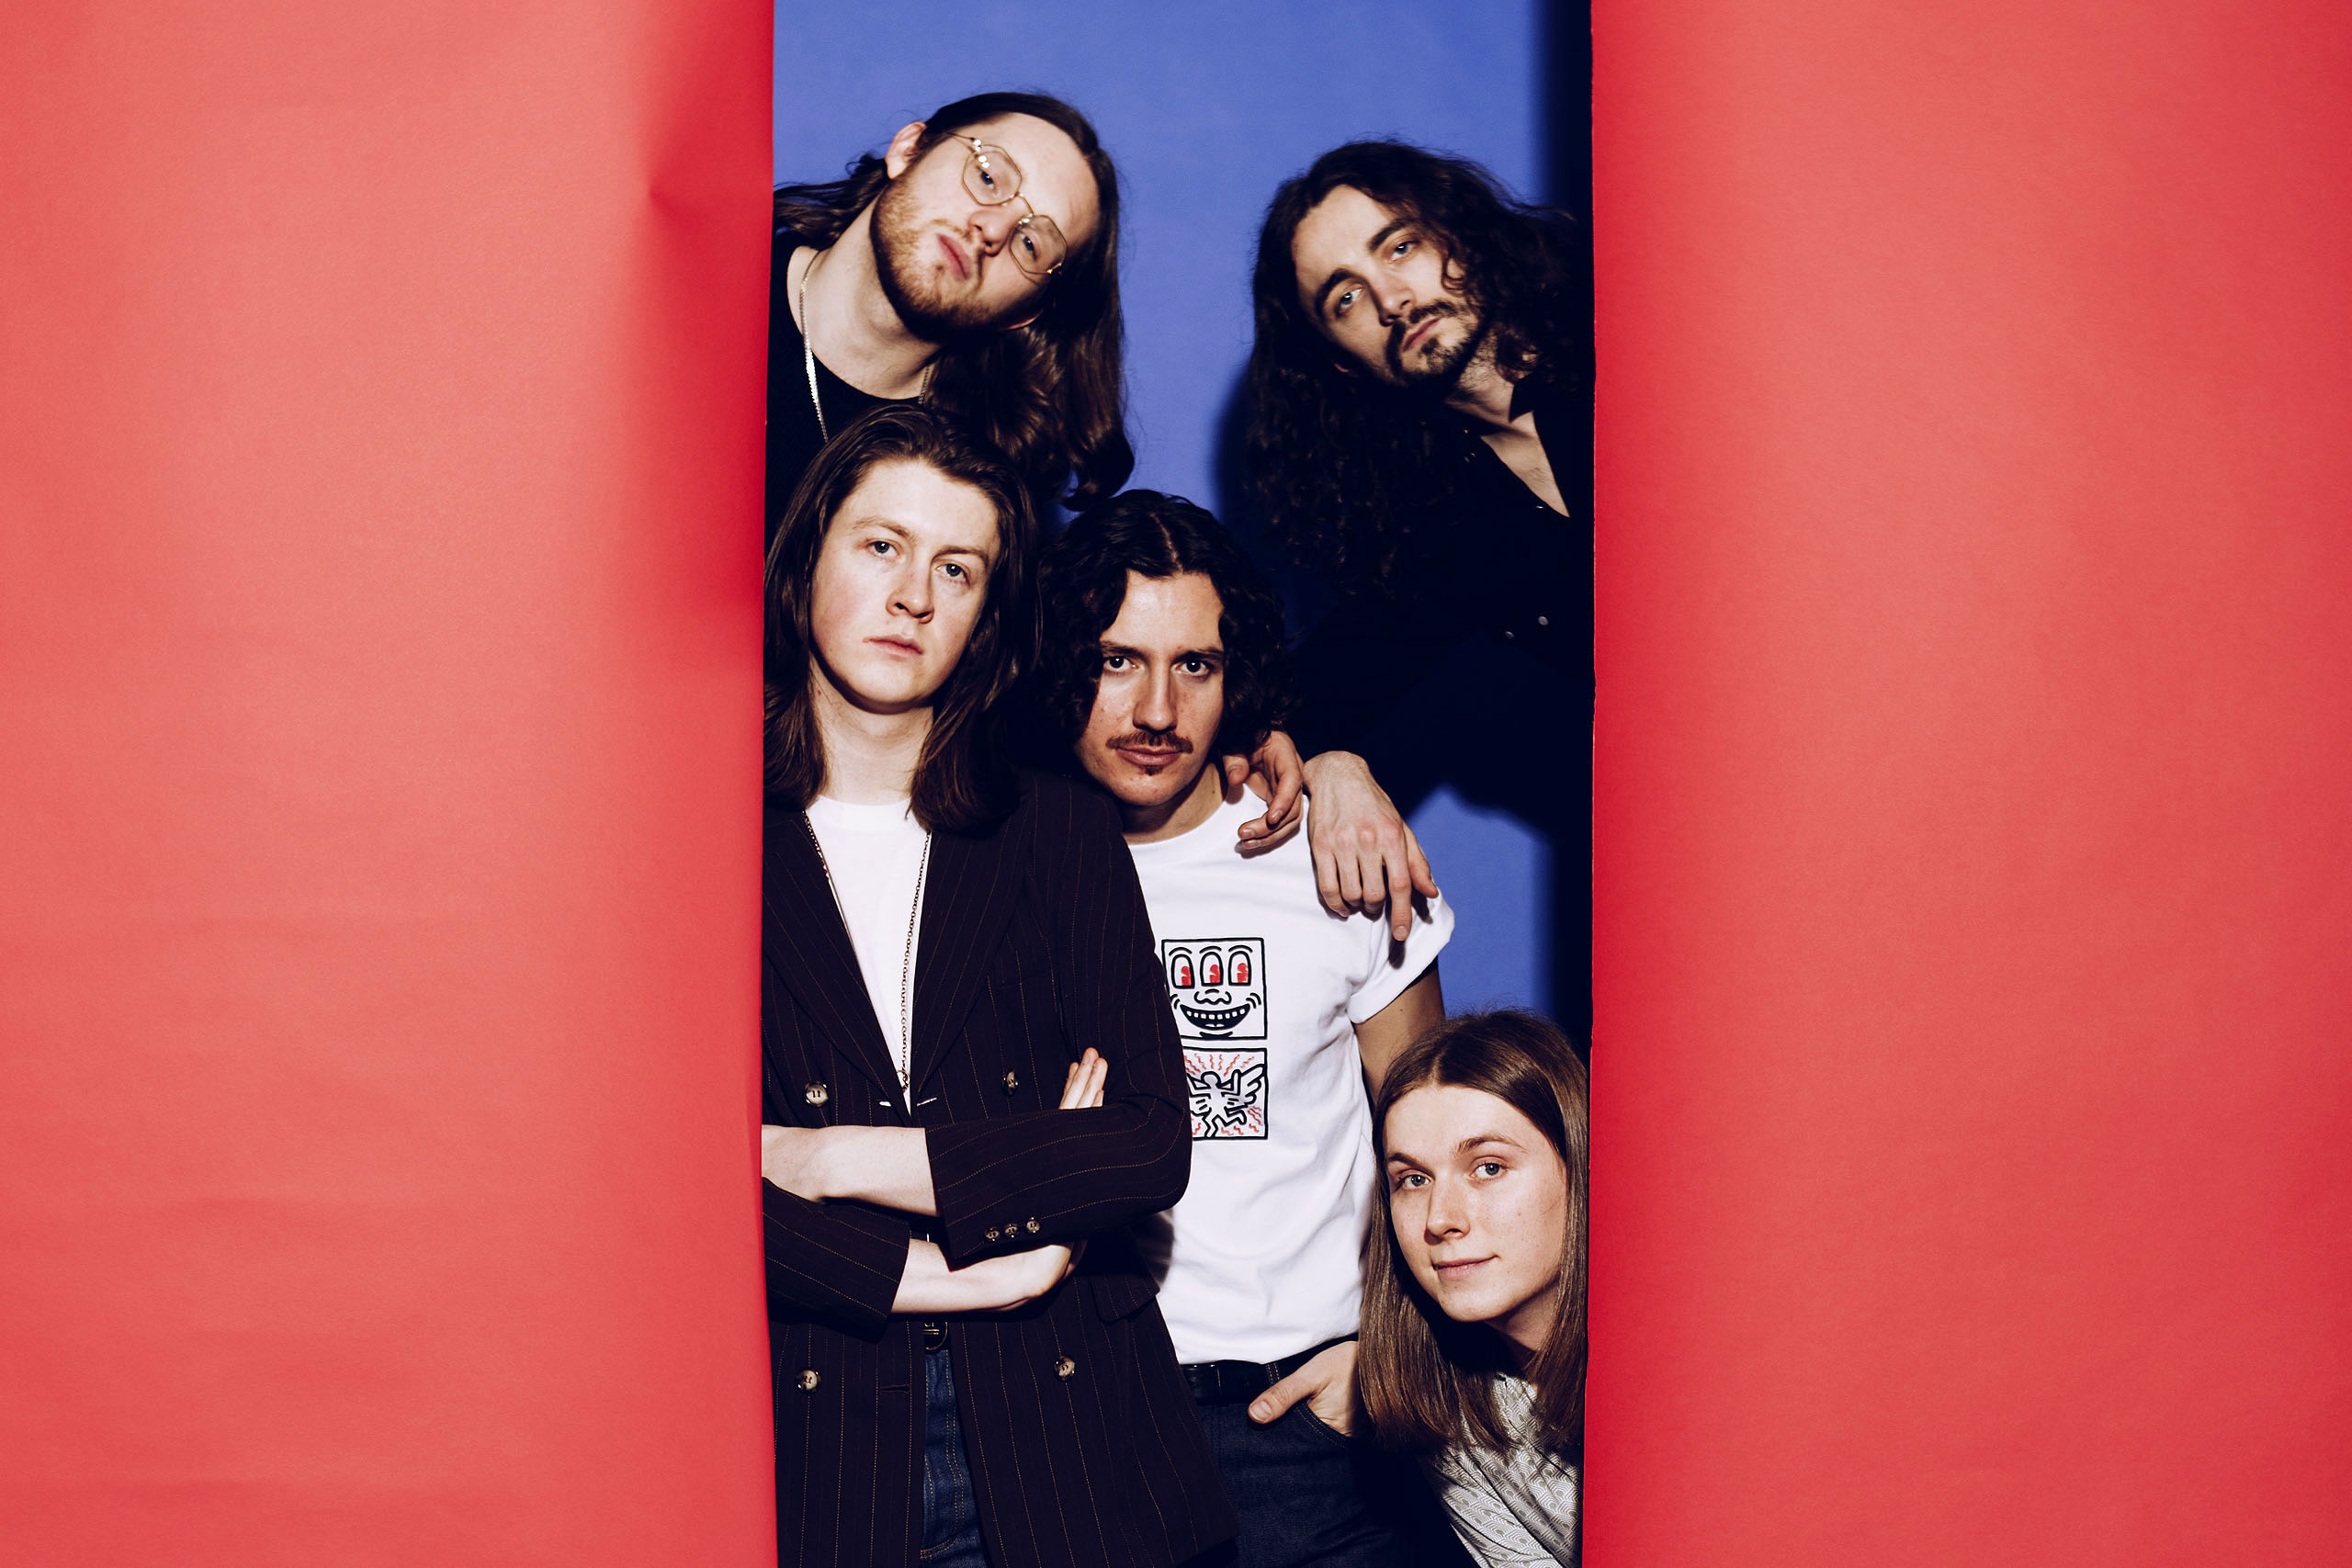 blossoms nme cover interview